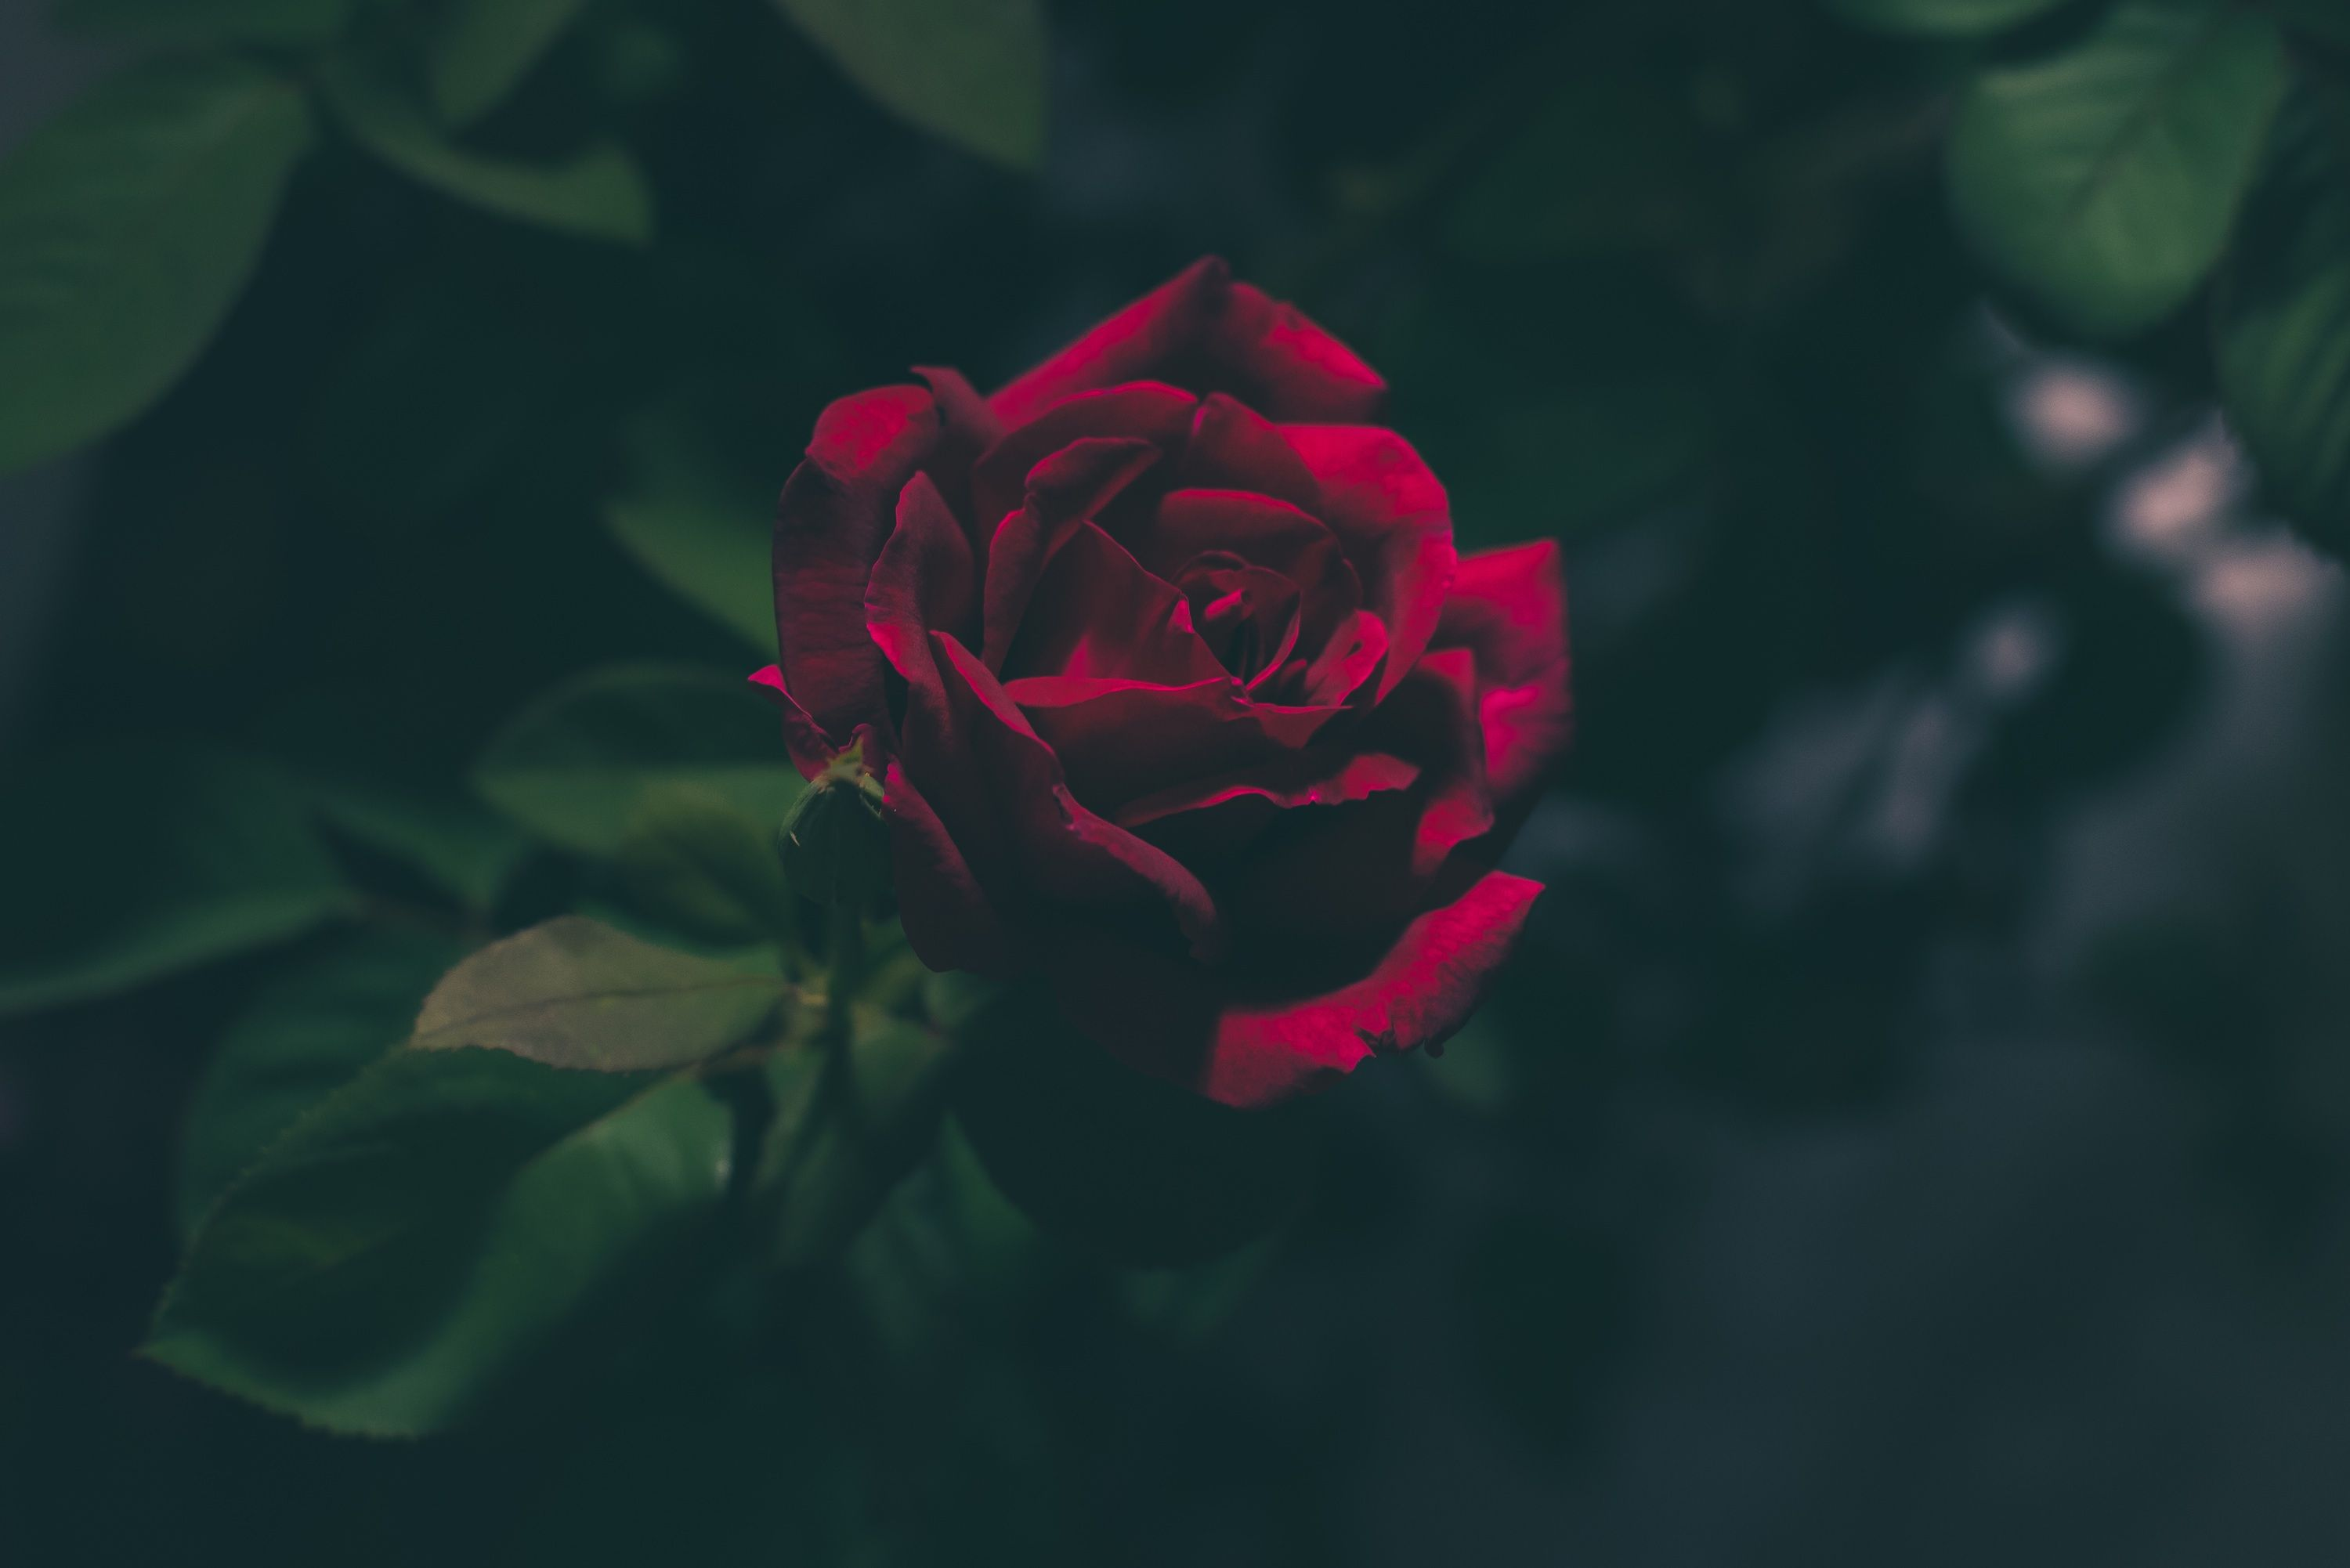 Photo by Jez Timms Unsplash Unsplash 赤い花, バラ, 花 背景